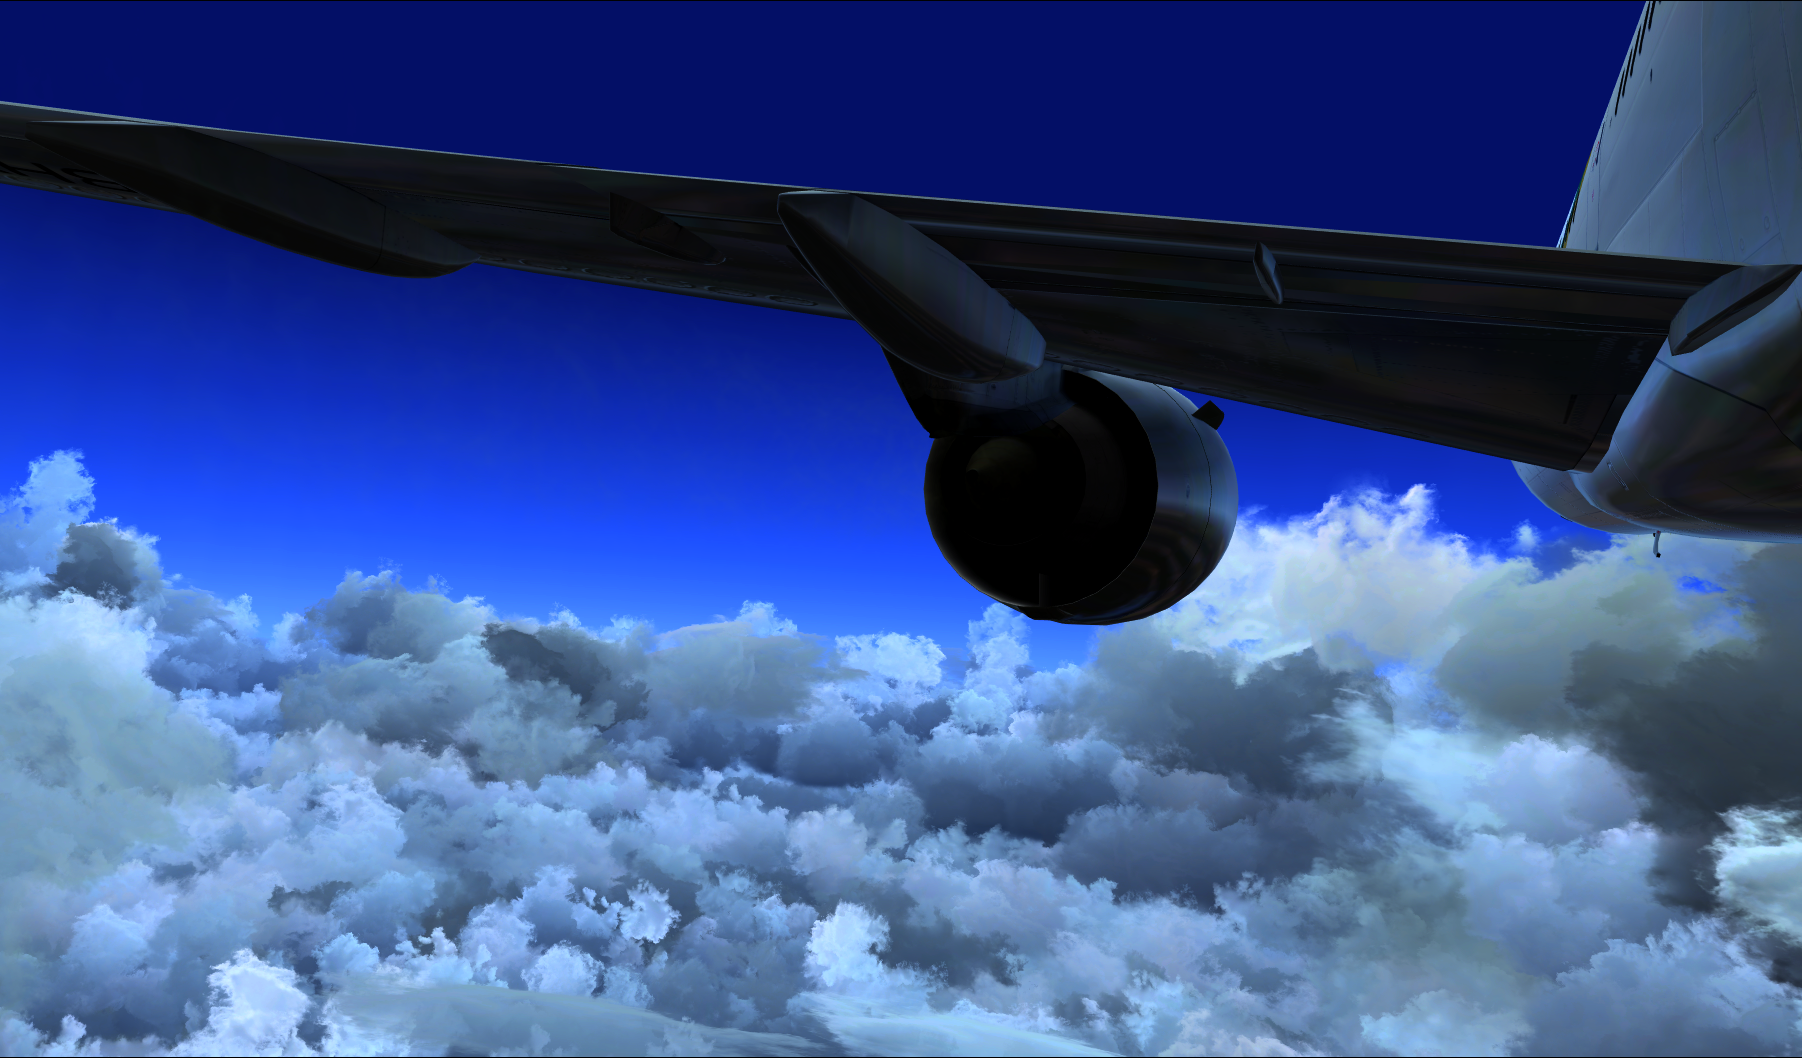 fsx%202014-08-06%2013-24-55-42.png